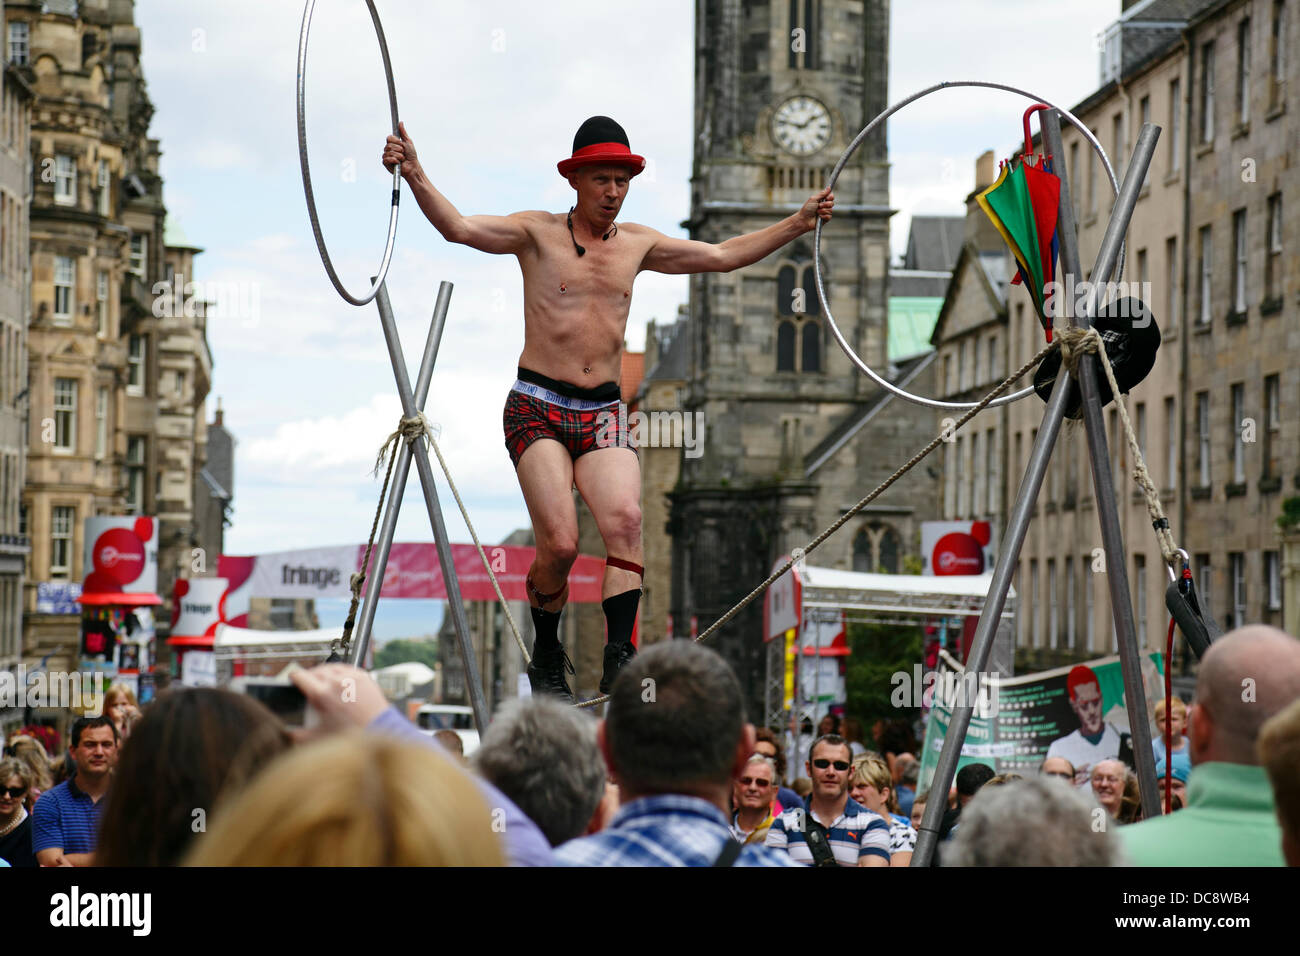 Edinburgh, Scotland, UK, Monday, 12th August, 2013. A Street Performer juggling and slack rope walking on the Royal Stock Photo